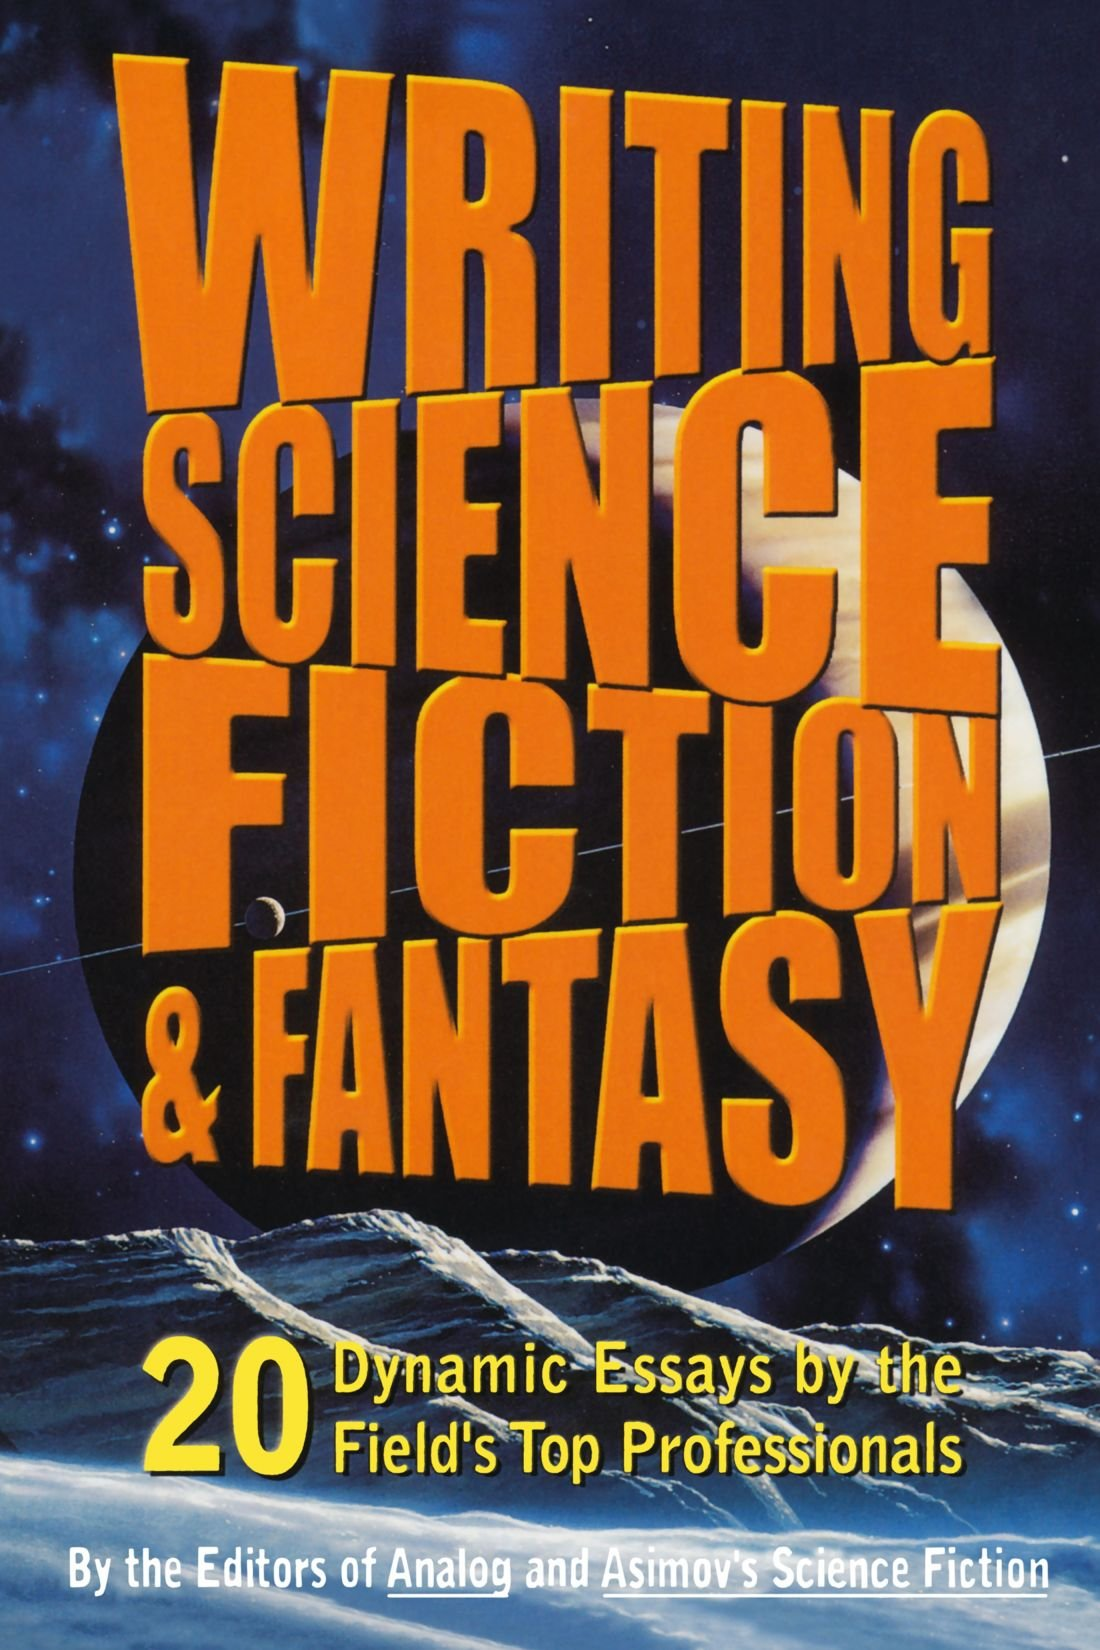 writing science fiction fantasy dynamic essays by the writing science fiction fantasy 20 dynamic essays by the field s top professionals analog and isaac asimov s science fiction magazine 9780312089269